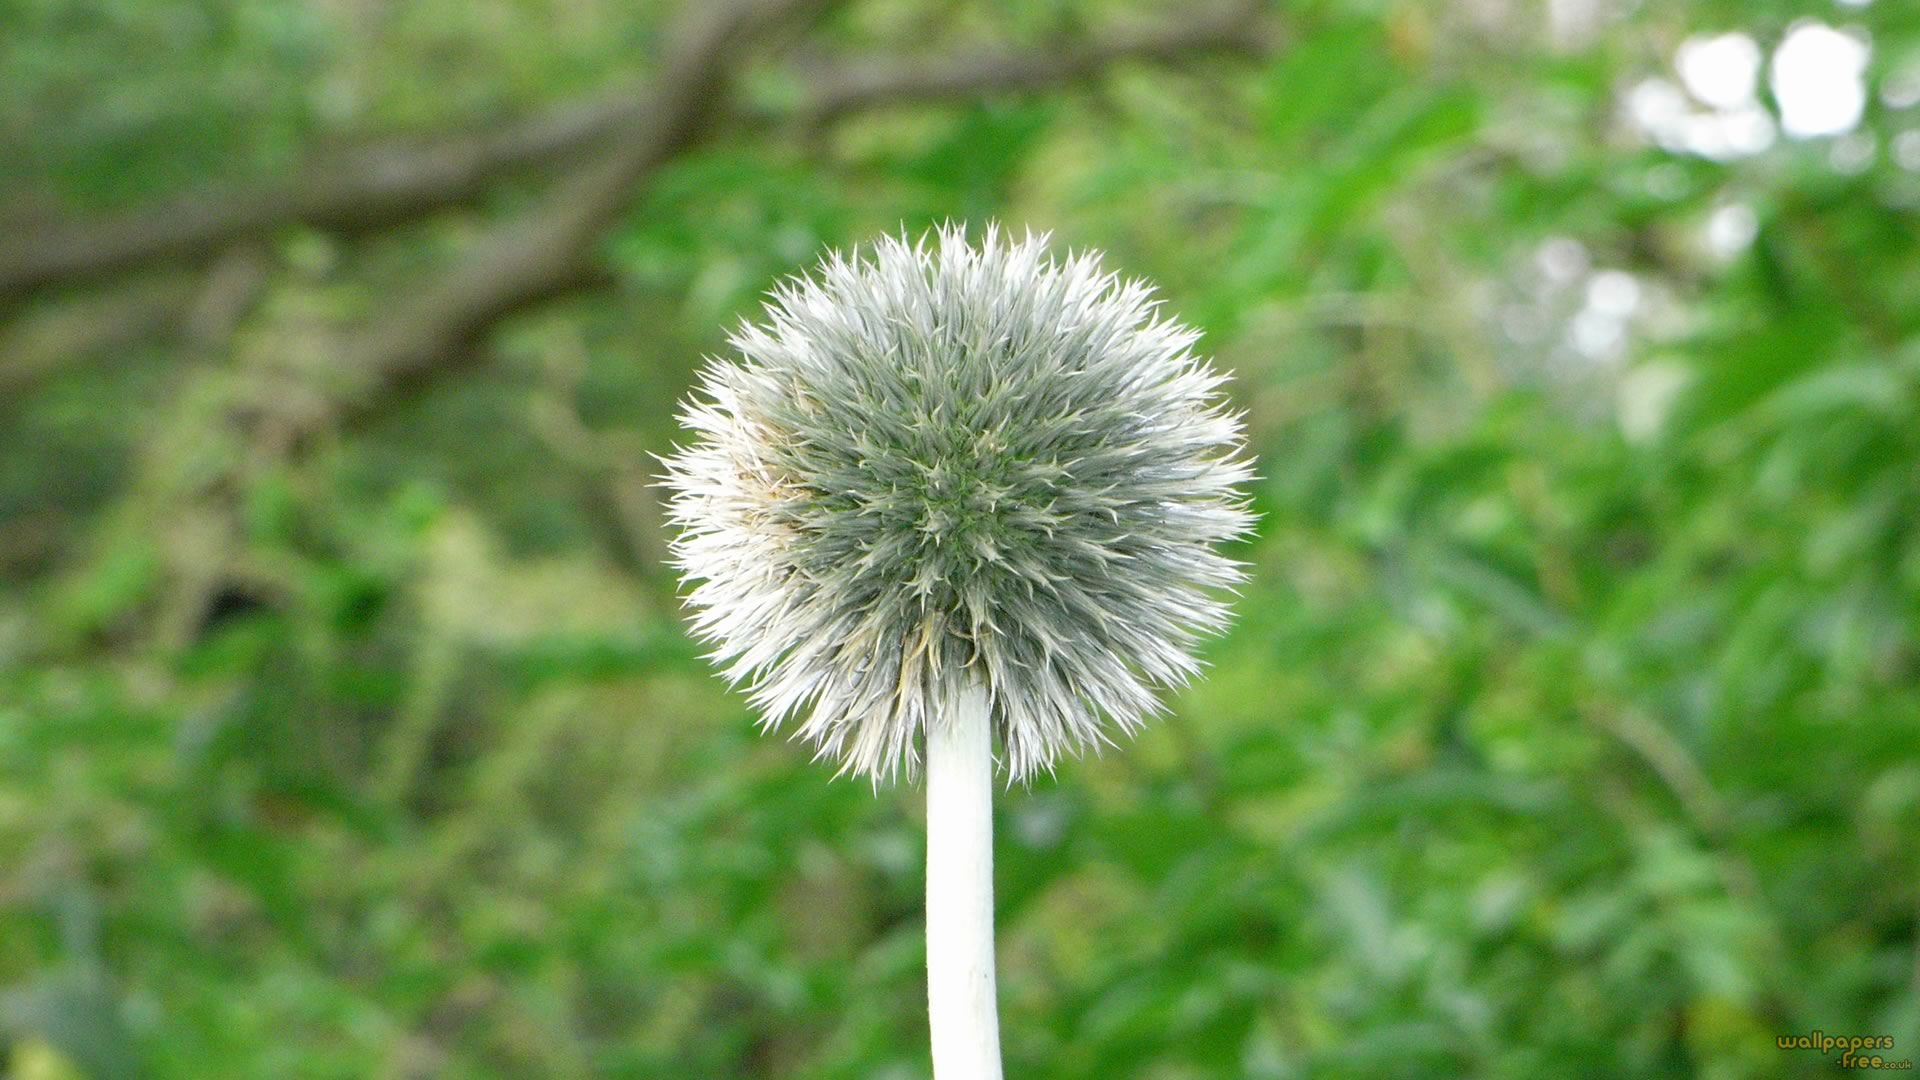 One Thistle